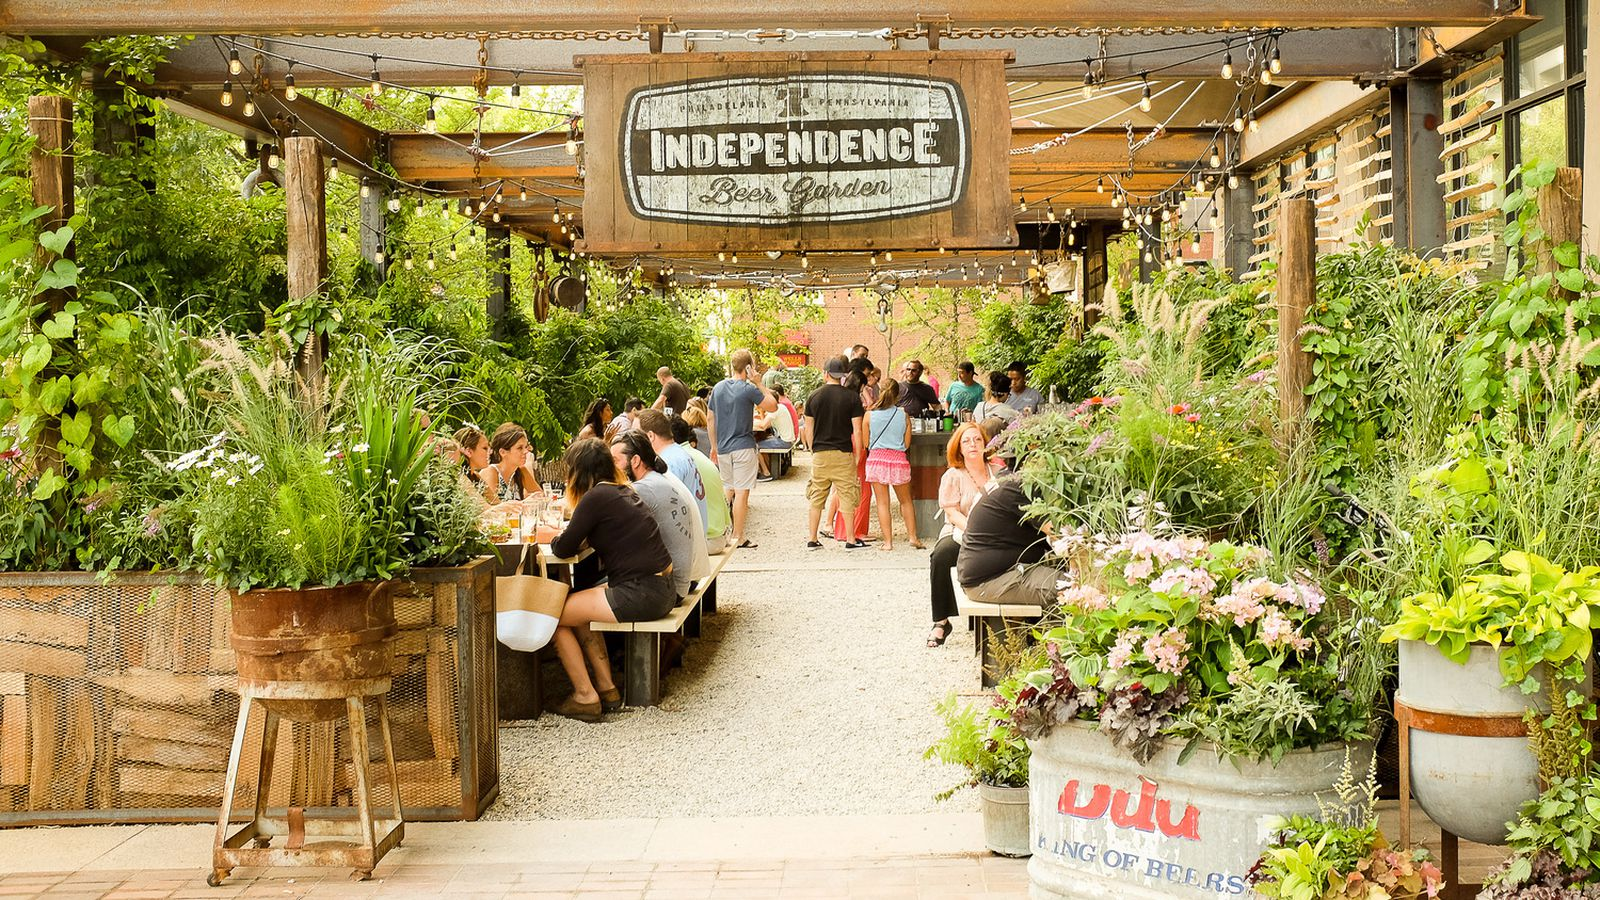 Independence Beer Garden Returns For The 2016 Season